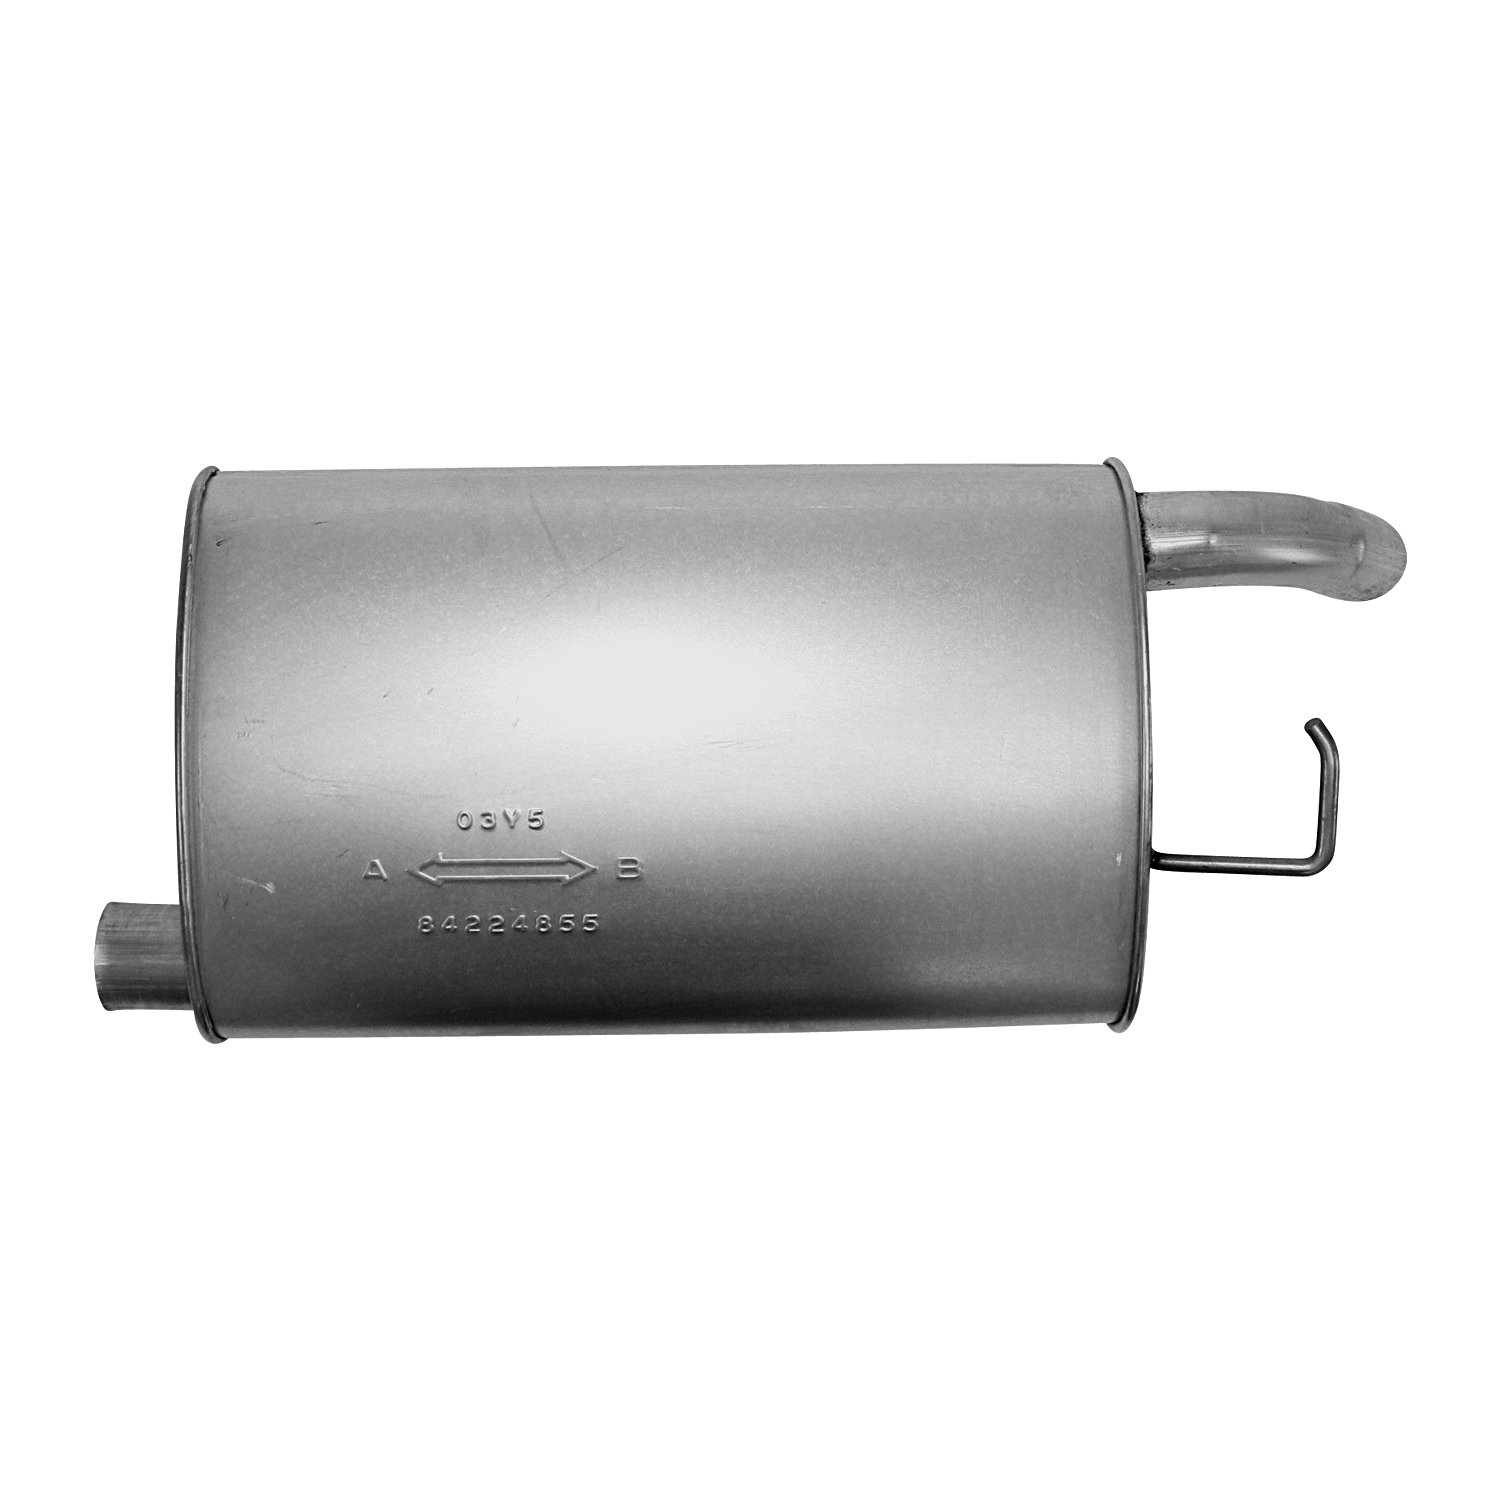 AP Exhaust 6496 MSL Big Max Turbo Muffler Aluminized Steel